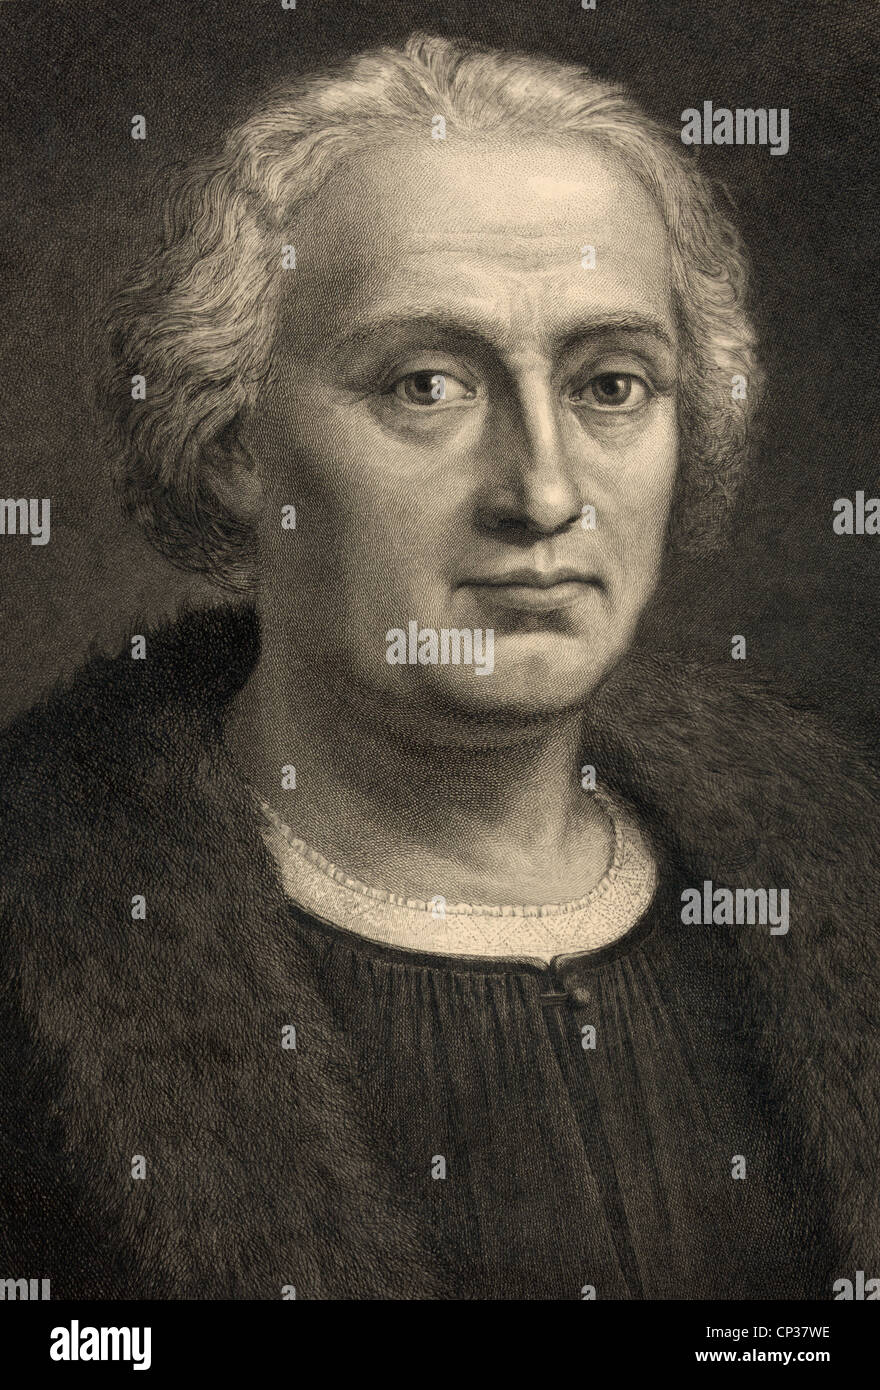 Christopher Columbus 1451-1506. Italian born Spanish financed explorer discoverer of America. Stock Photo